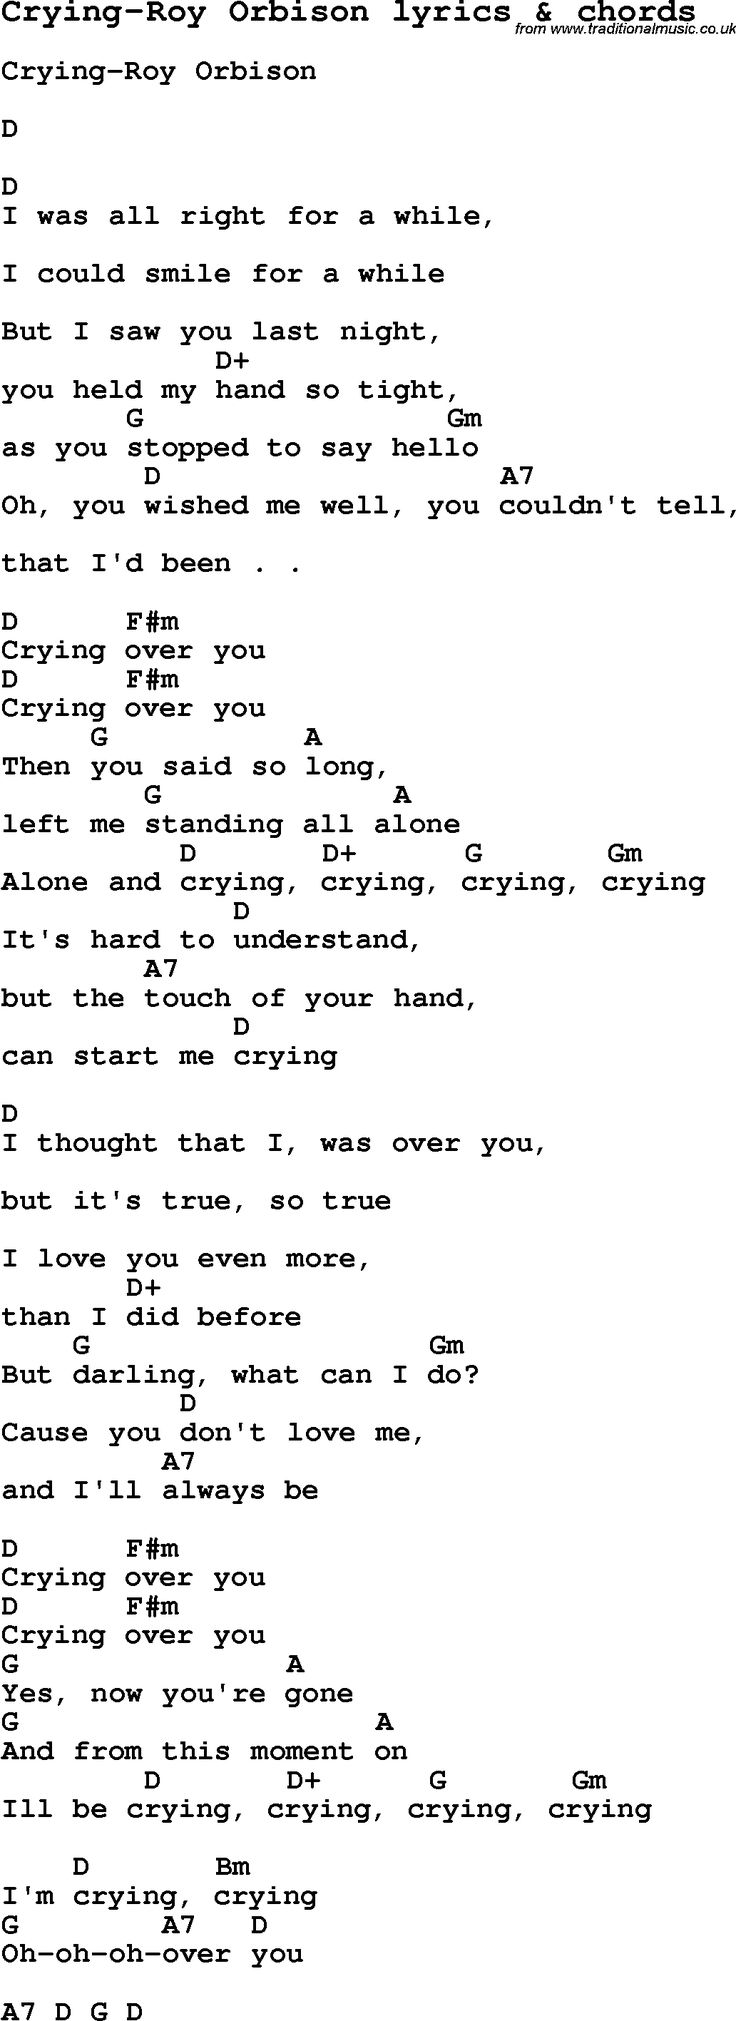 820 best music images on pinterest music el amor and nerd love song lyrics for crying roy orbison with chords for ukulele guitar banjo hexwebz Image collections